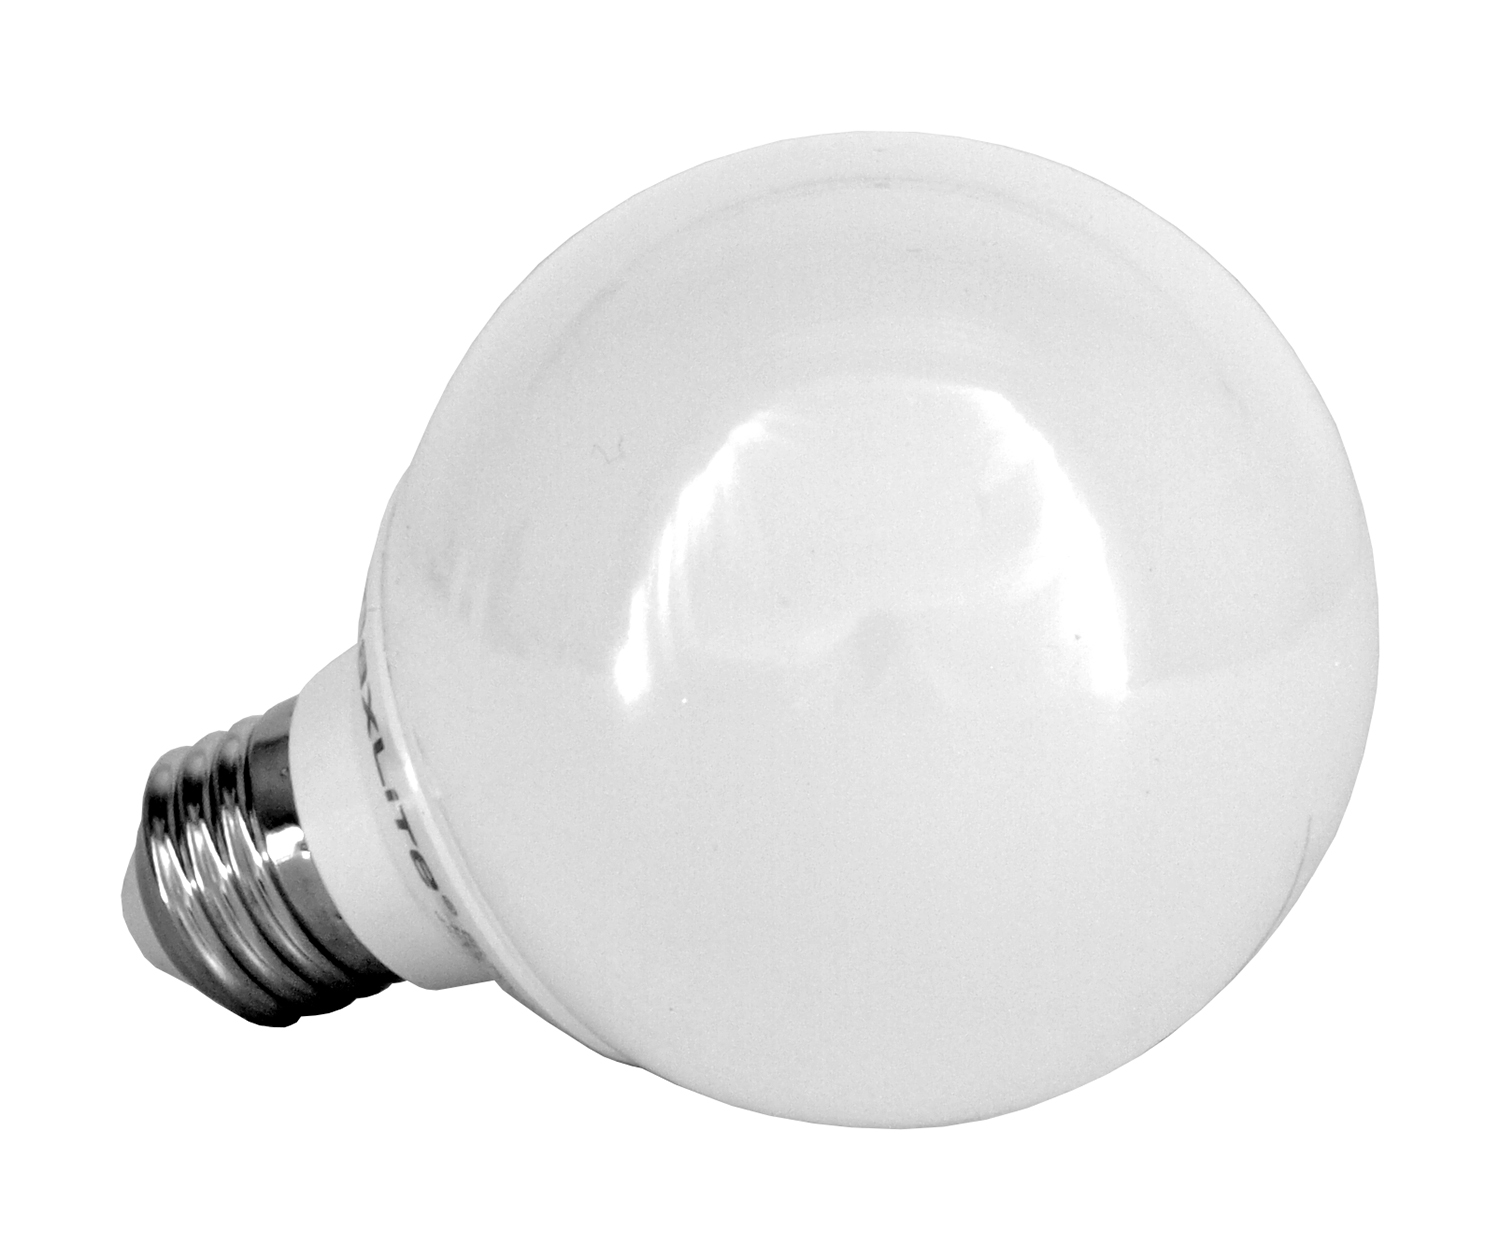 G25 LAMP E26 Base LED Light Bulb - 450 Lumens - 2700k